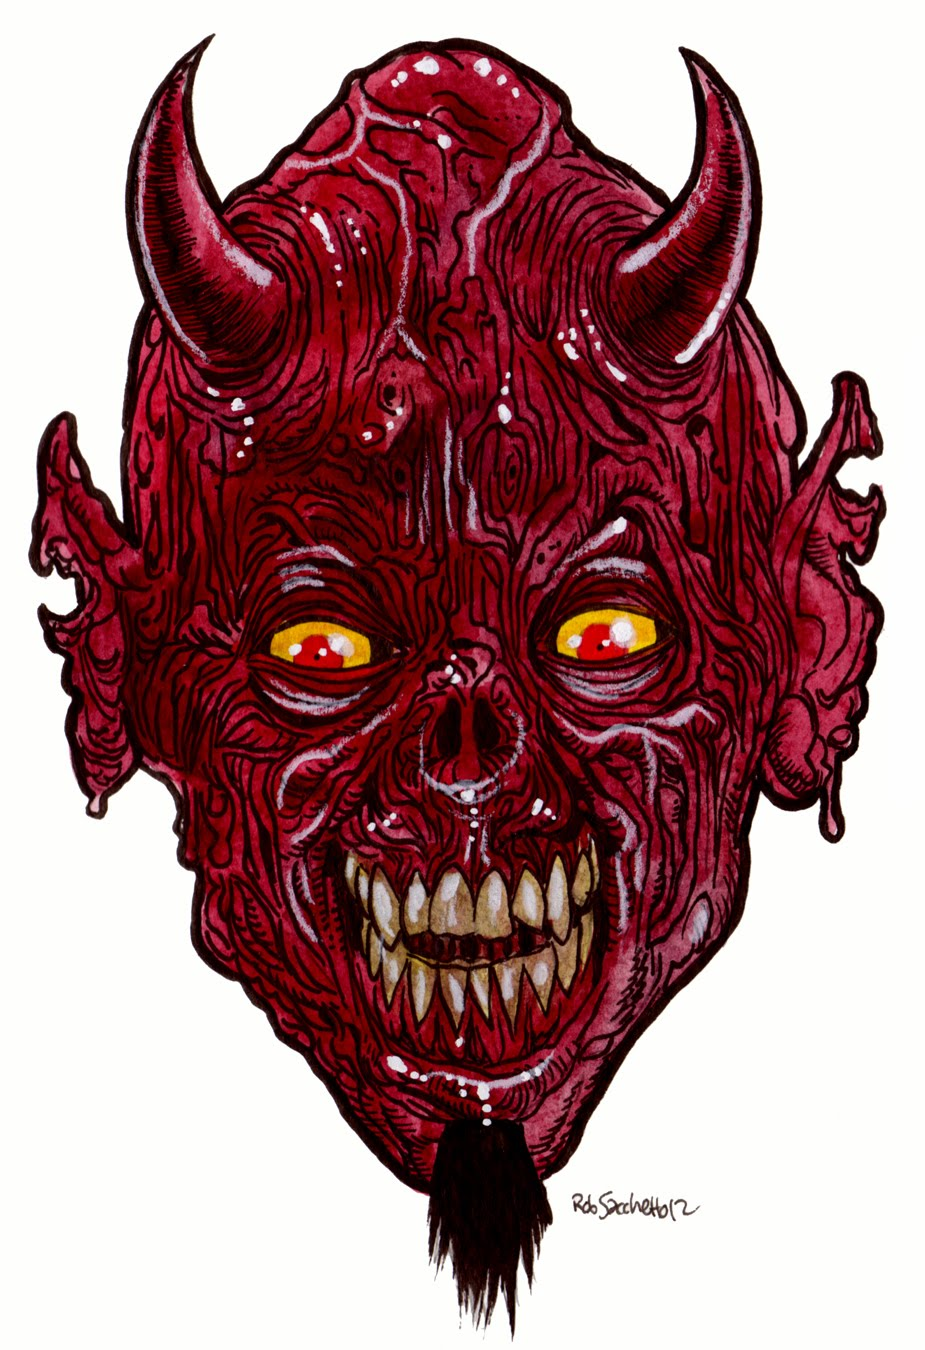 hotld-the-devil-is-a-zombie.jpg